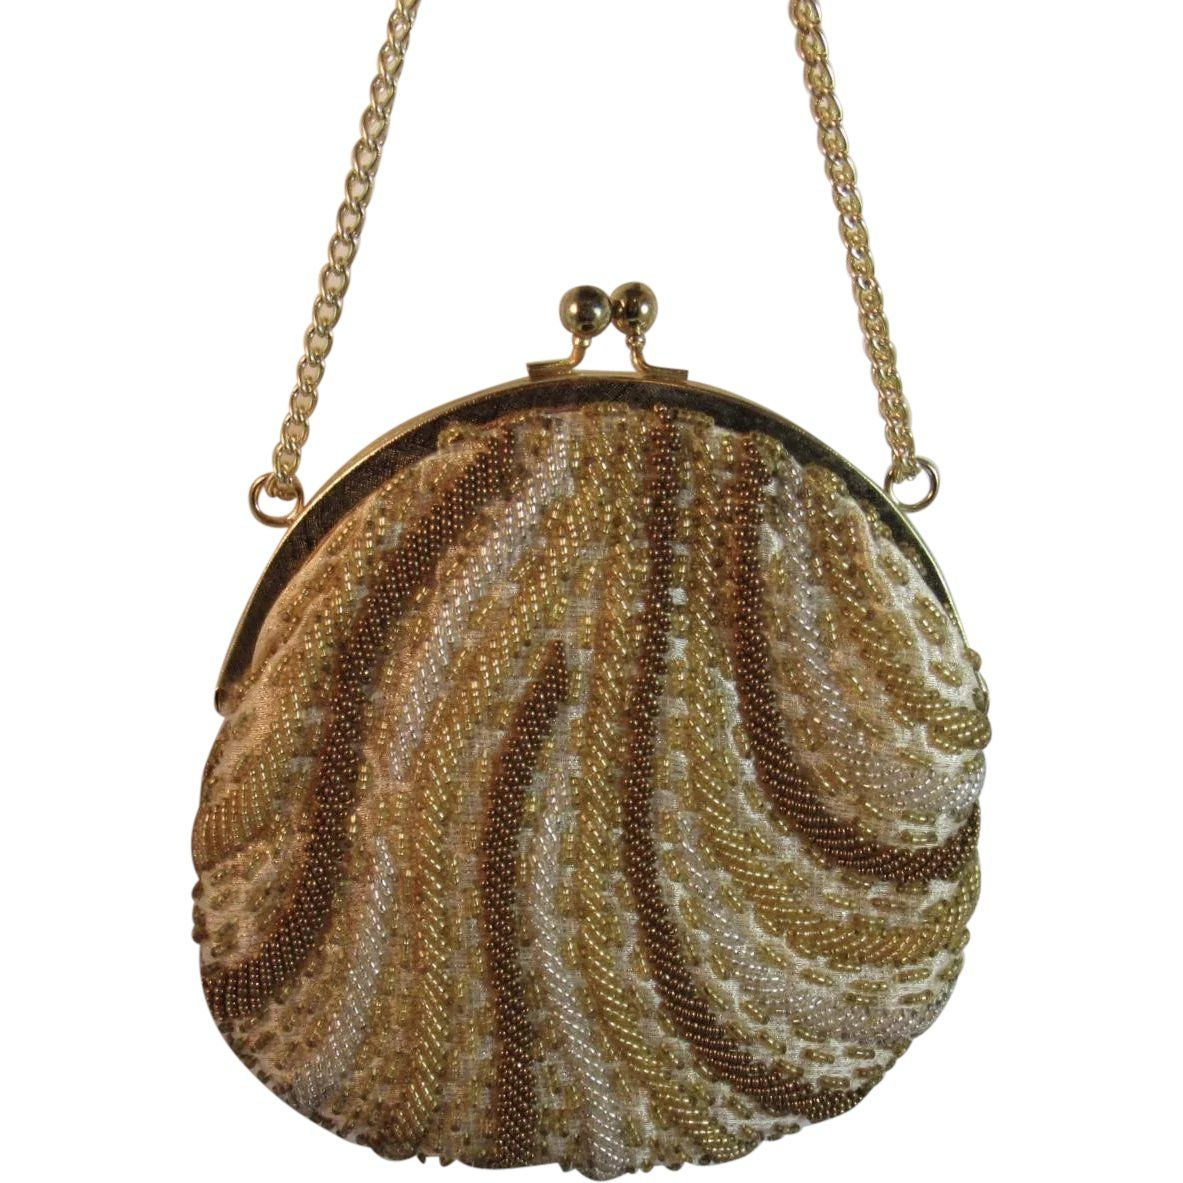 02de9cb2 La Regale Beaded Purse Evening Bag Vintage Hand Made Metal Frame with Chain  Strap Satin Lined